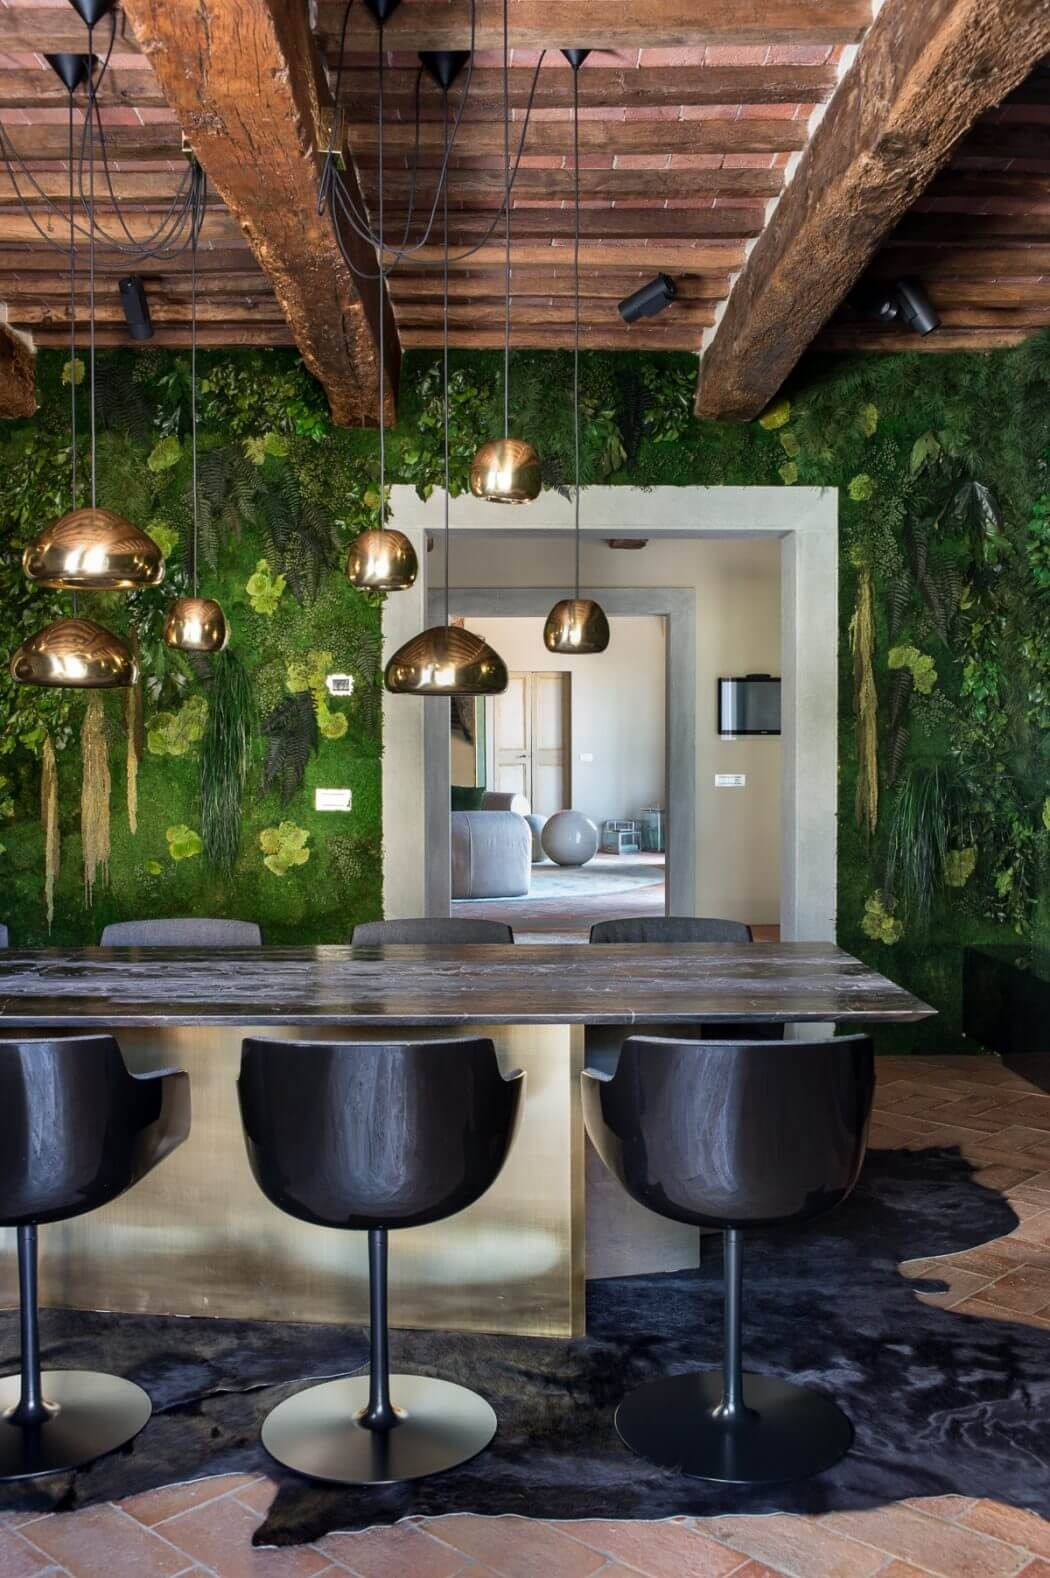 Private house by emanuele svetti arquitectura interior mis sueos featuring the tom dixon void and void mini lighting pendants private house by emanuele svetti aloadofball Choice Image